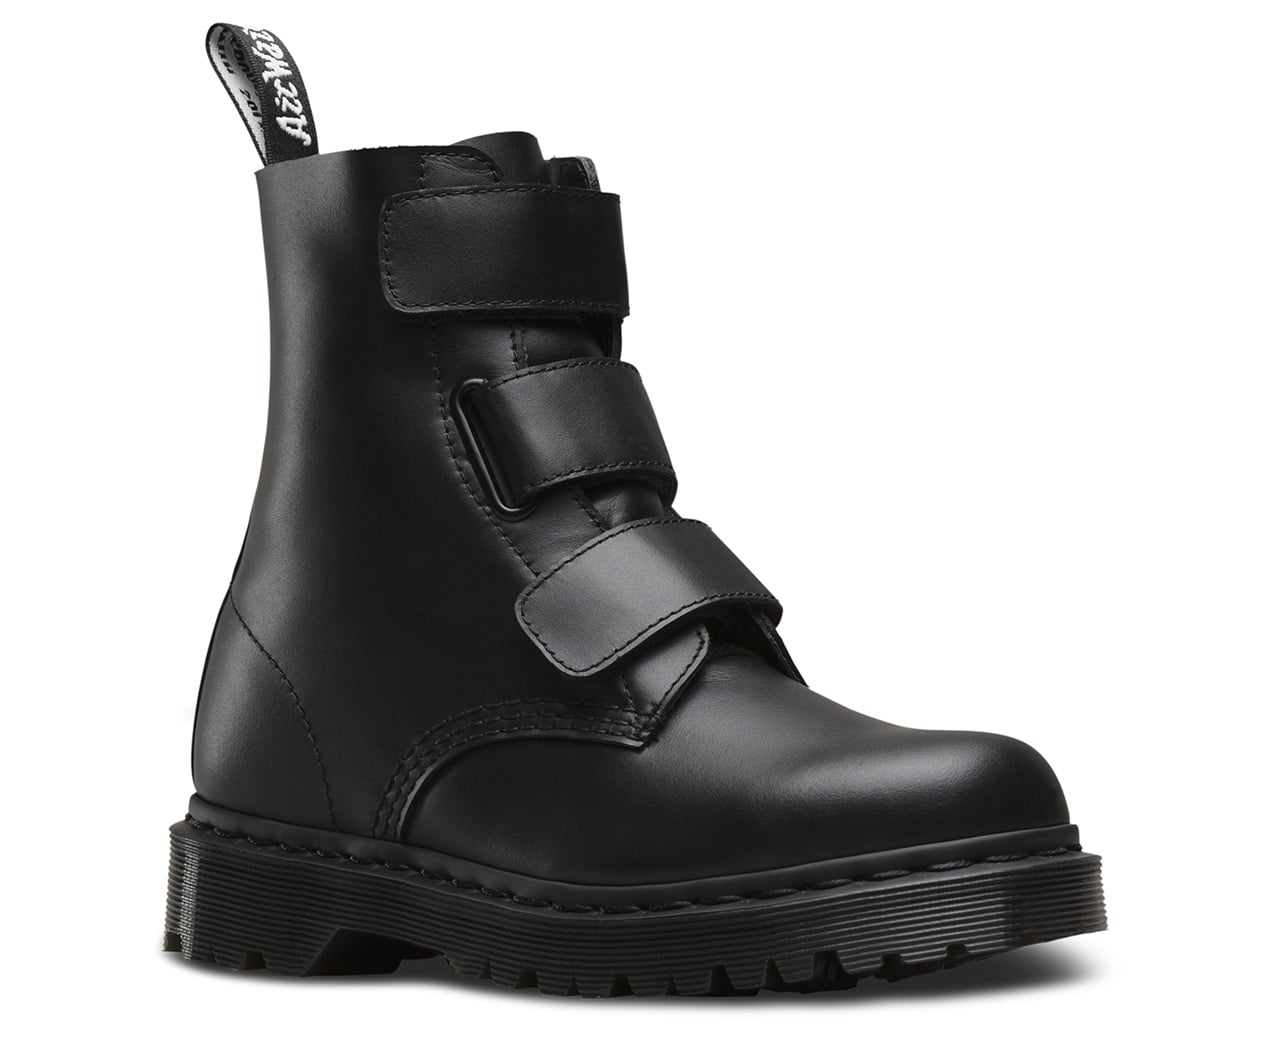 Dr. Martens Coralia Boots in Black Venice ($140) | Leave It